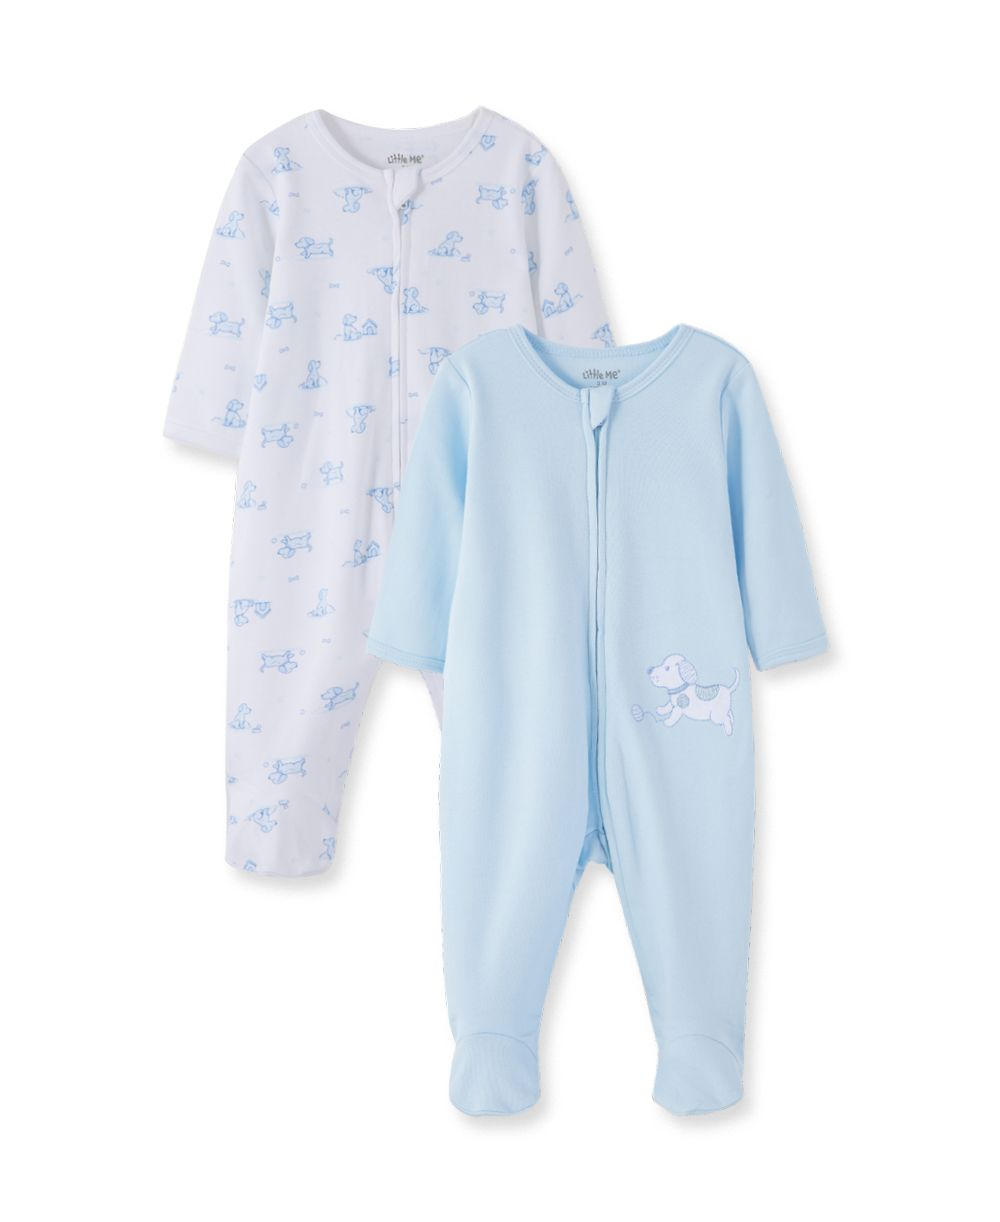 2Pc Blue Doggie Footies